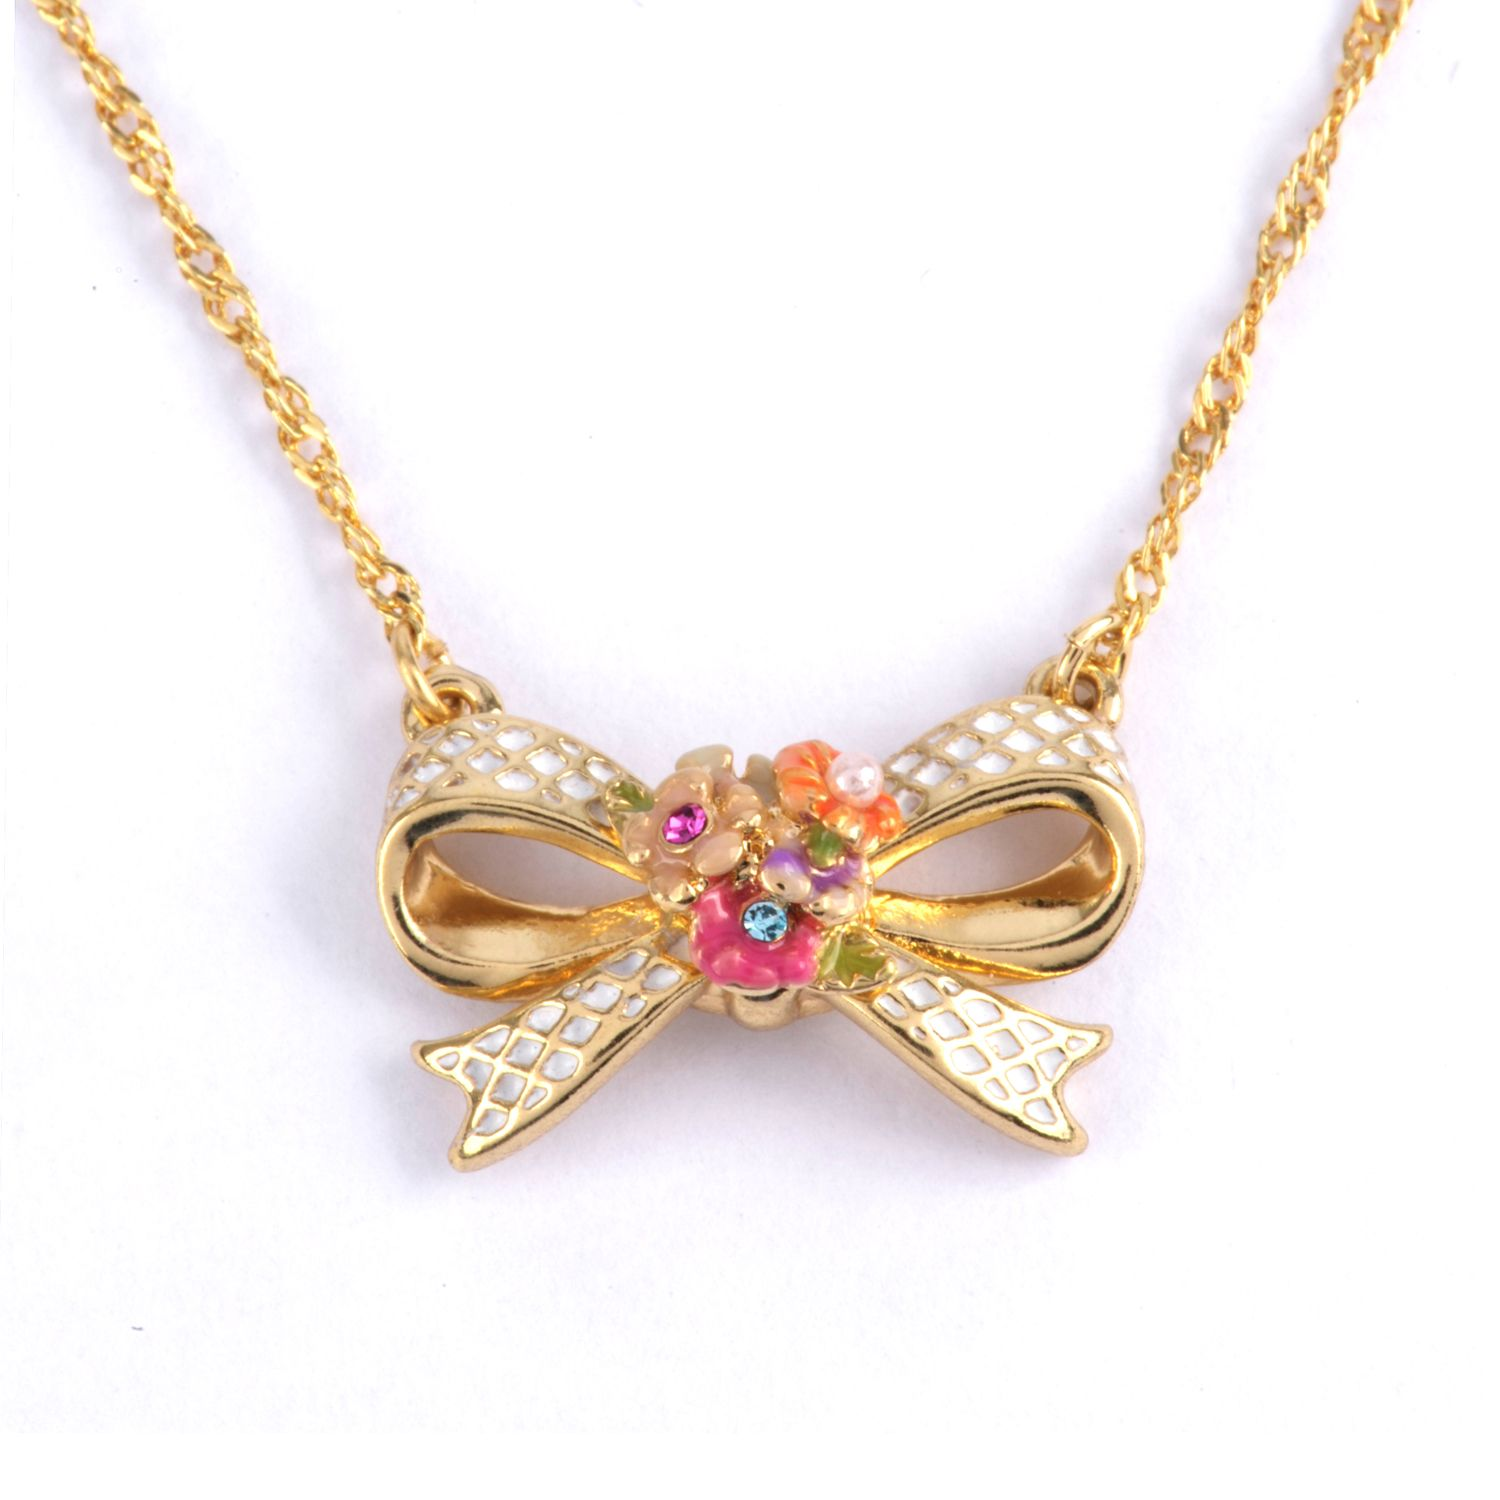 Irresistibles n uds necklace